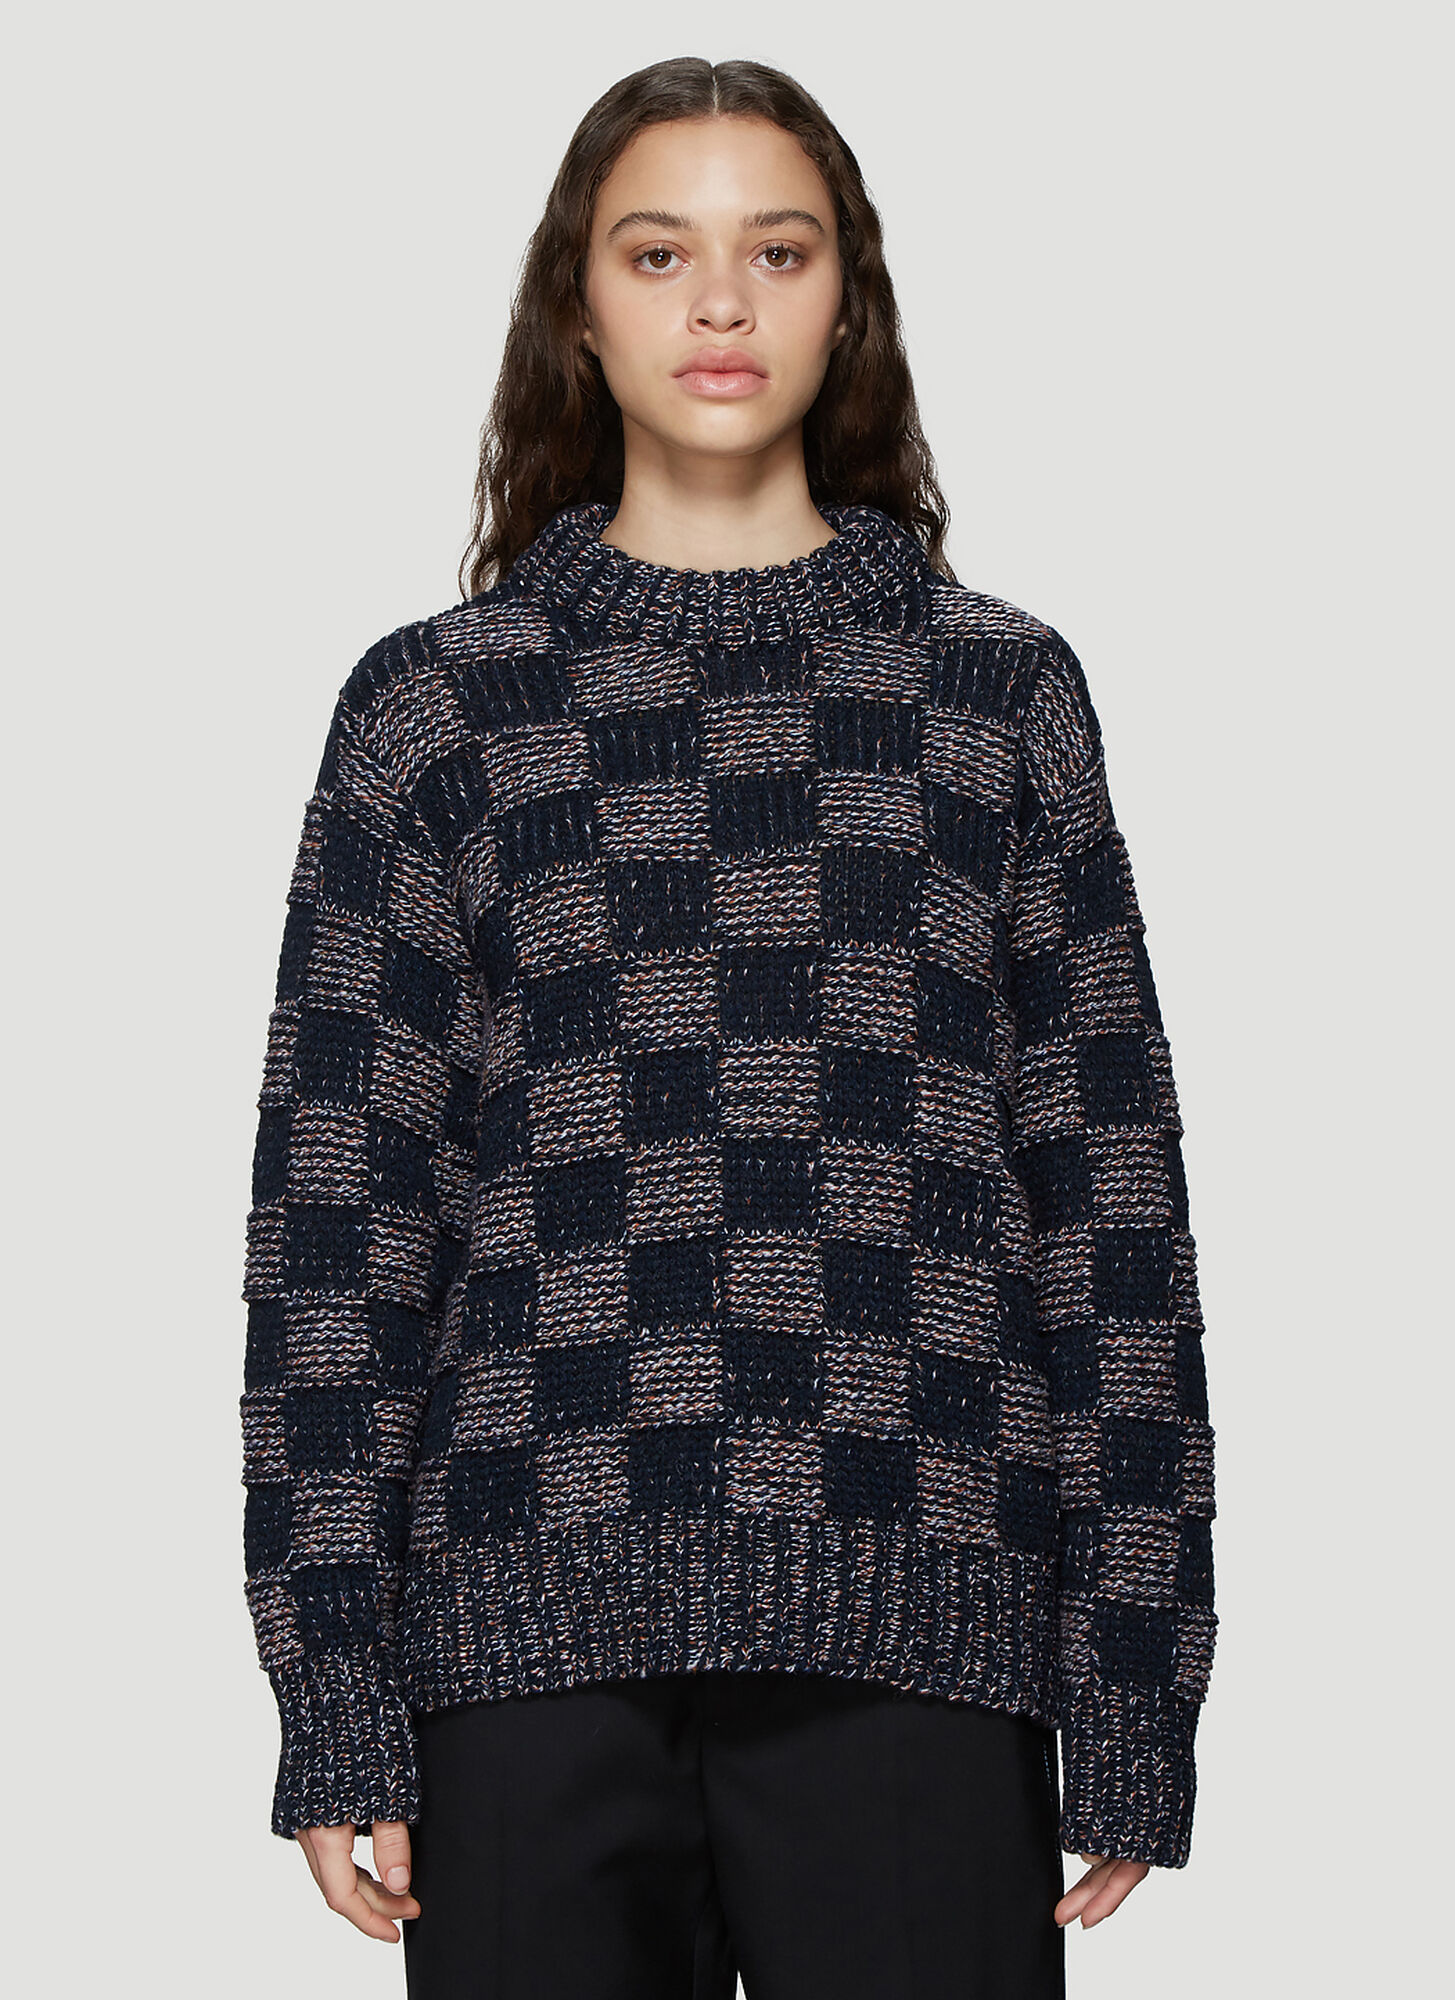 Marni Checked Sweater in Navy